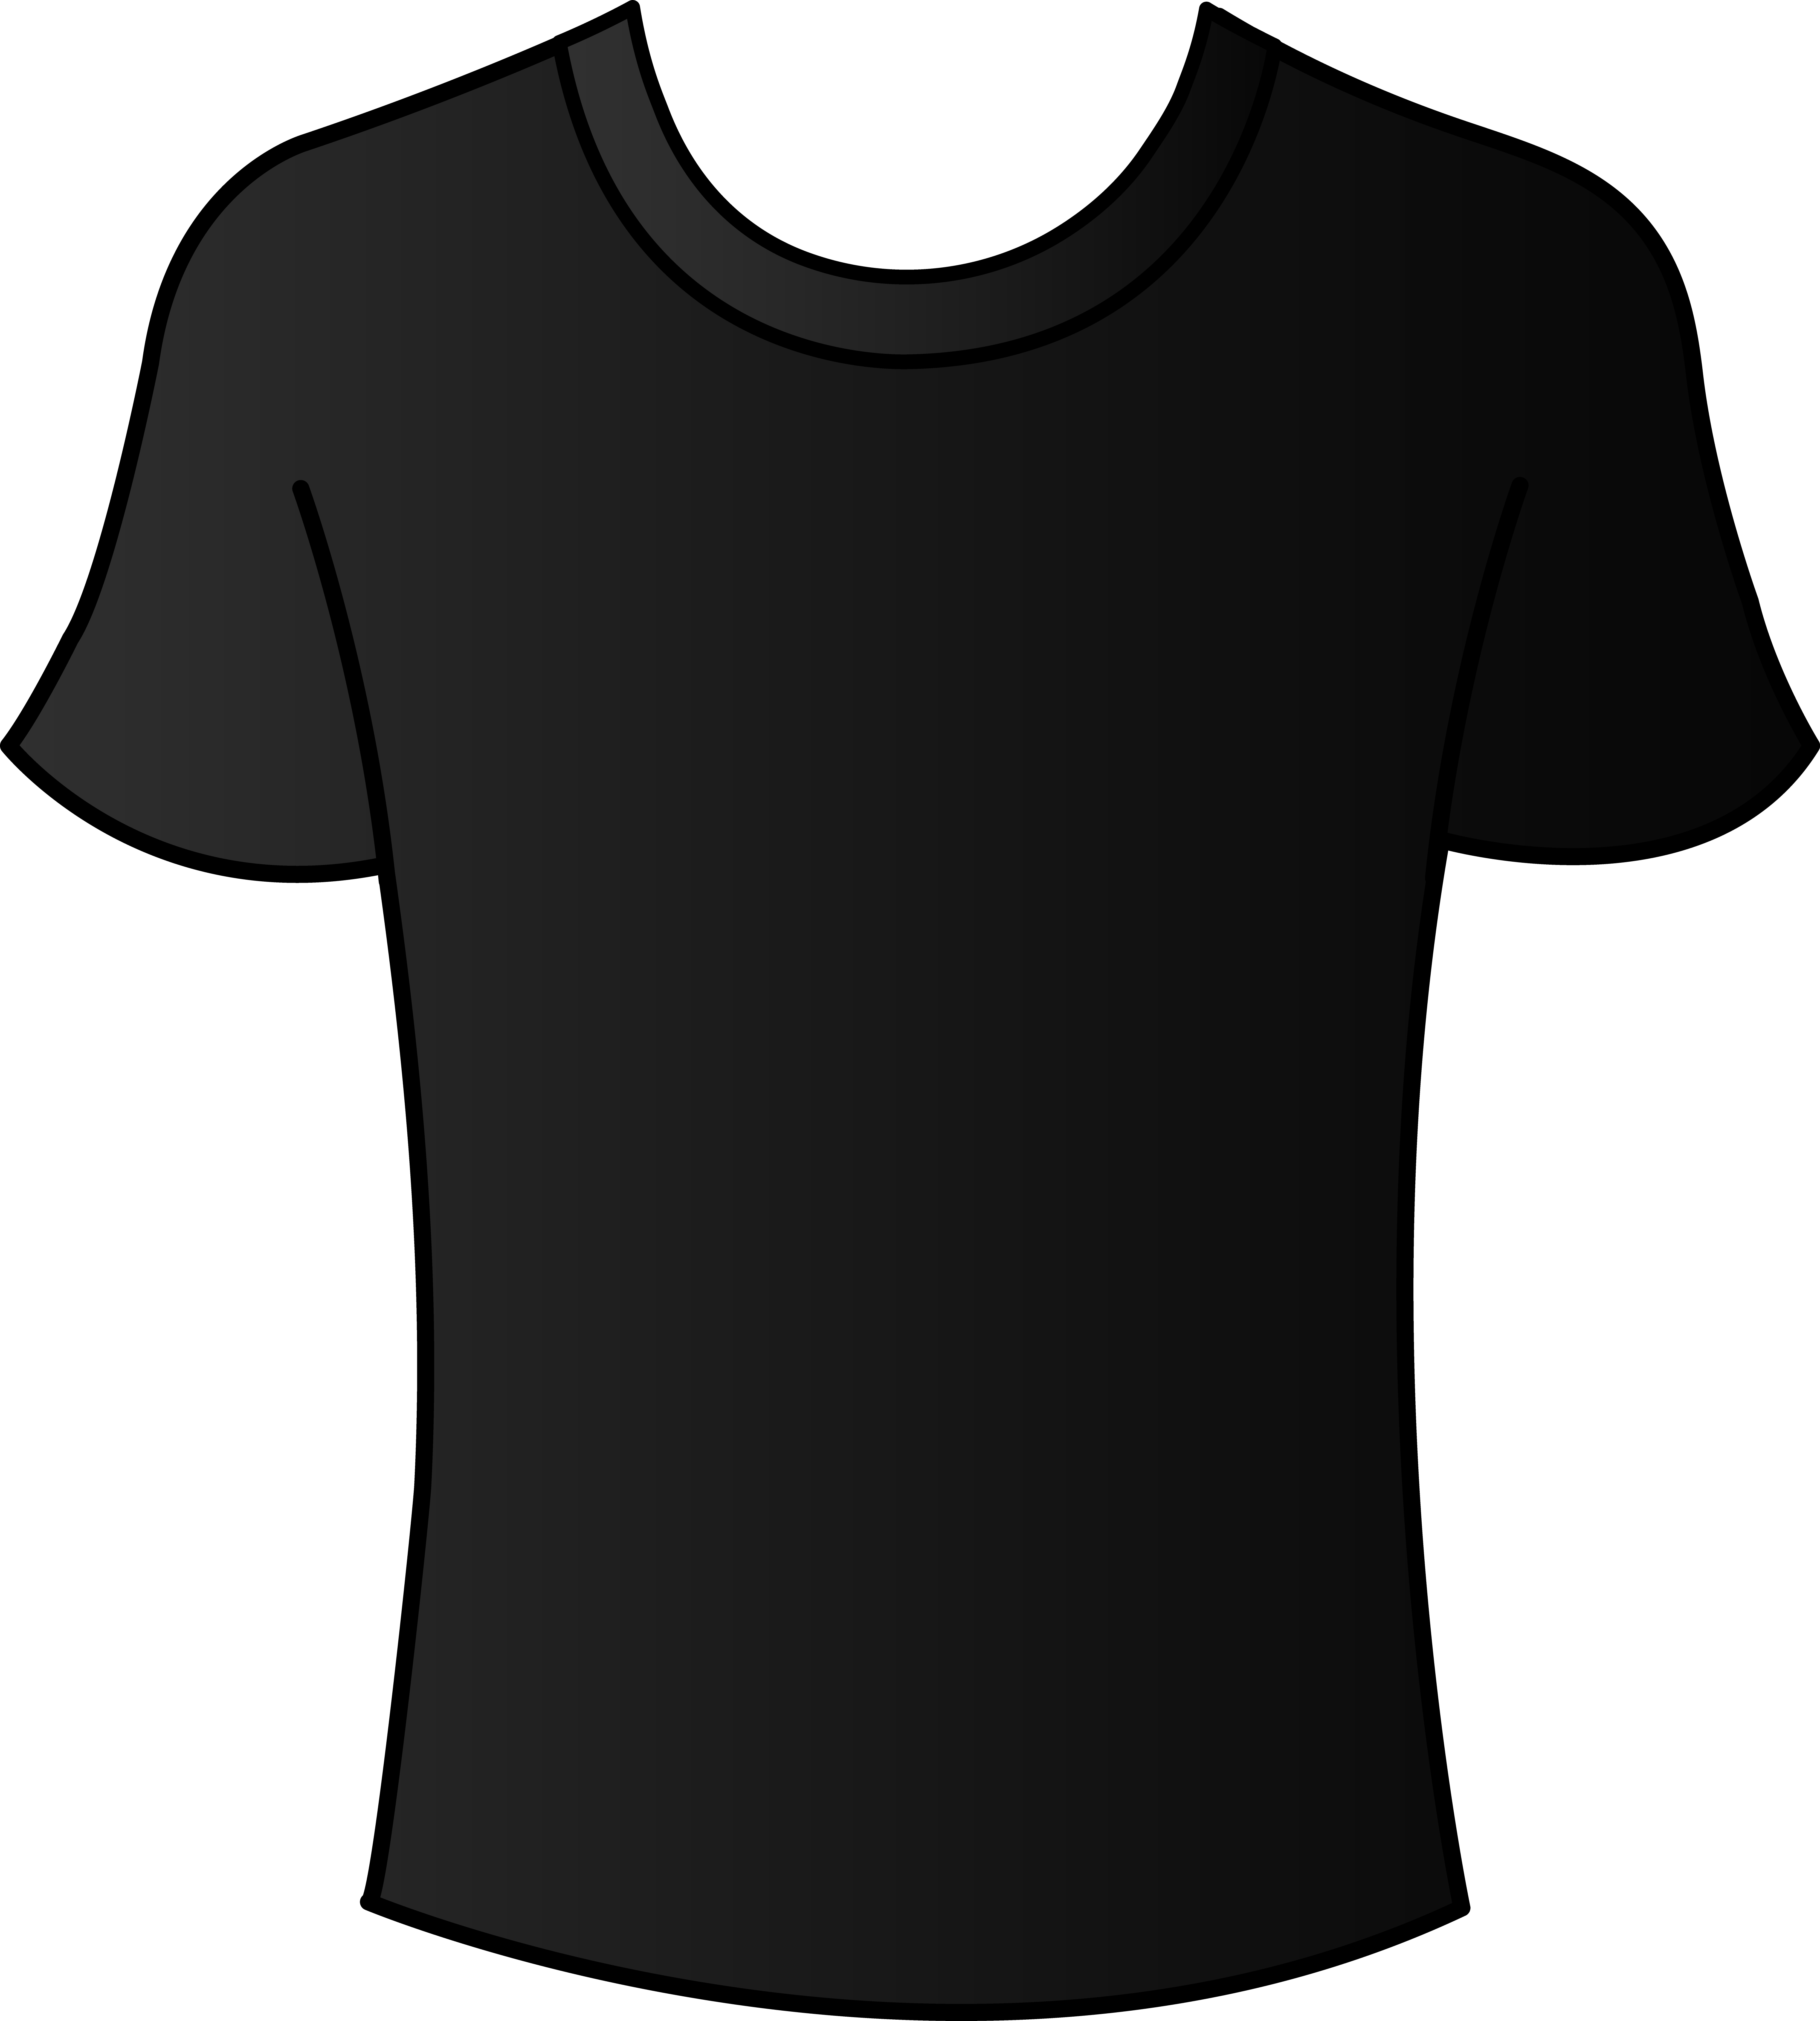 Black Tee Shirt Template Clipart Best